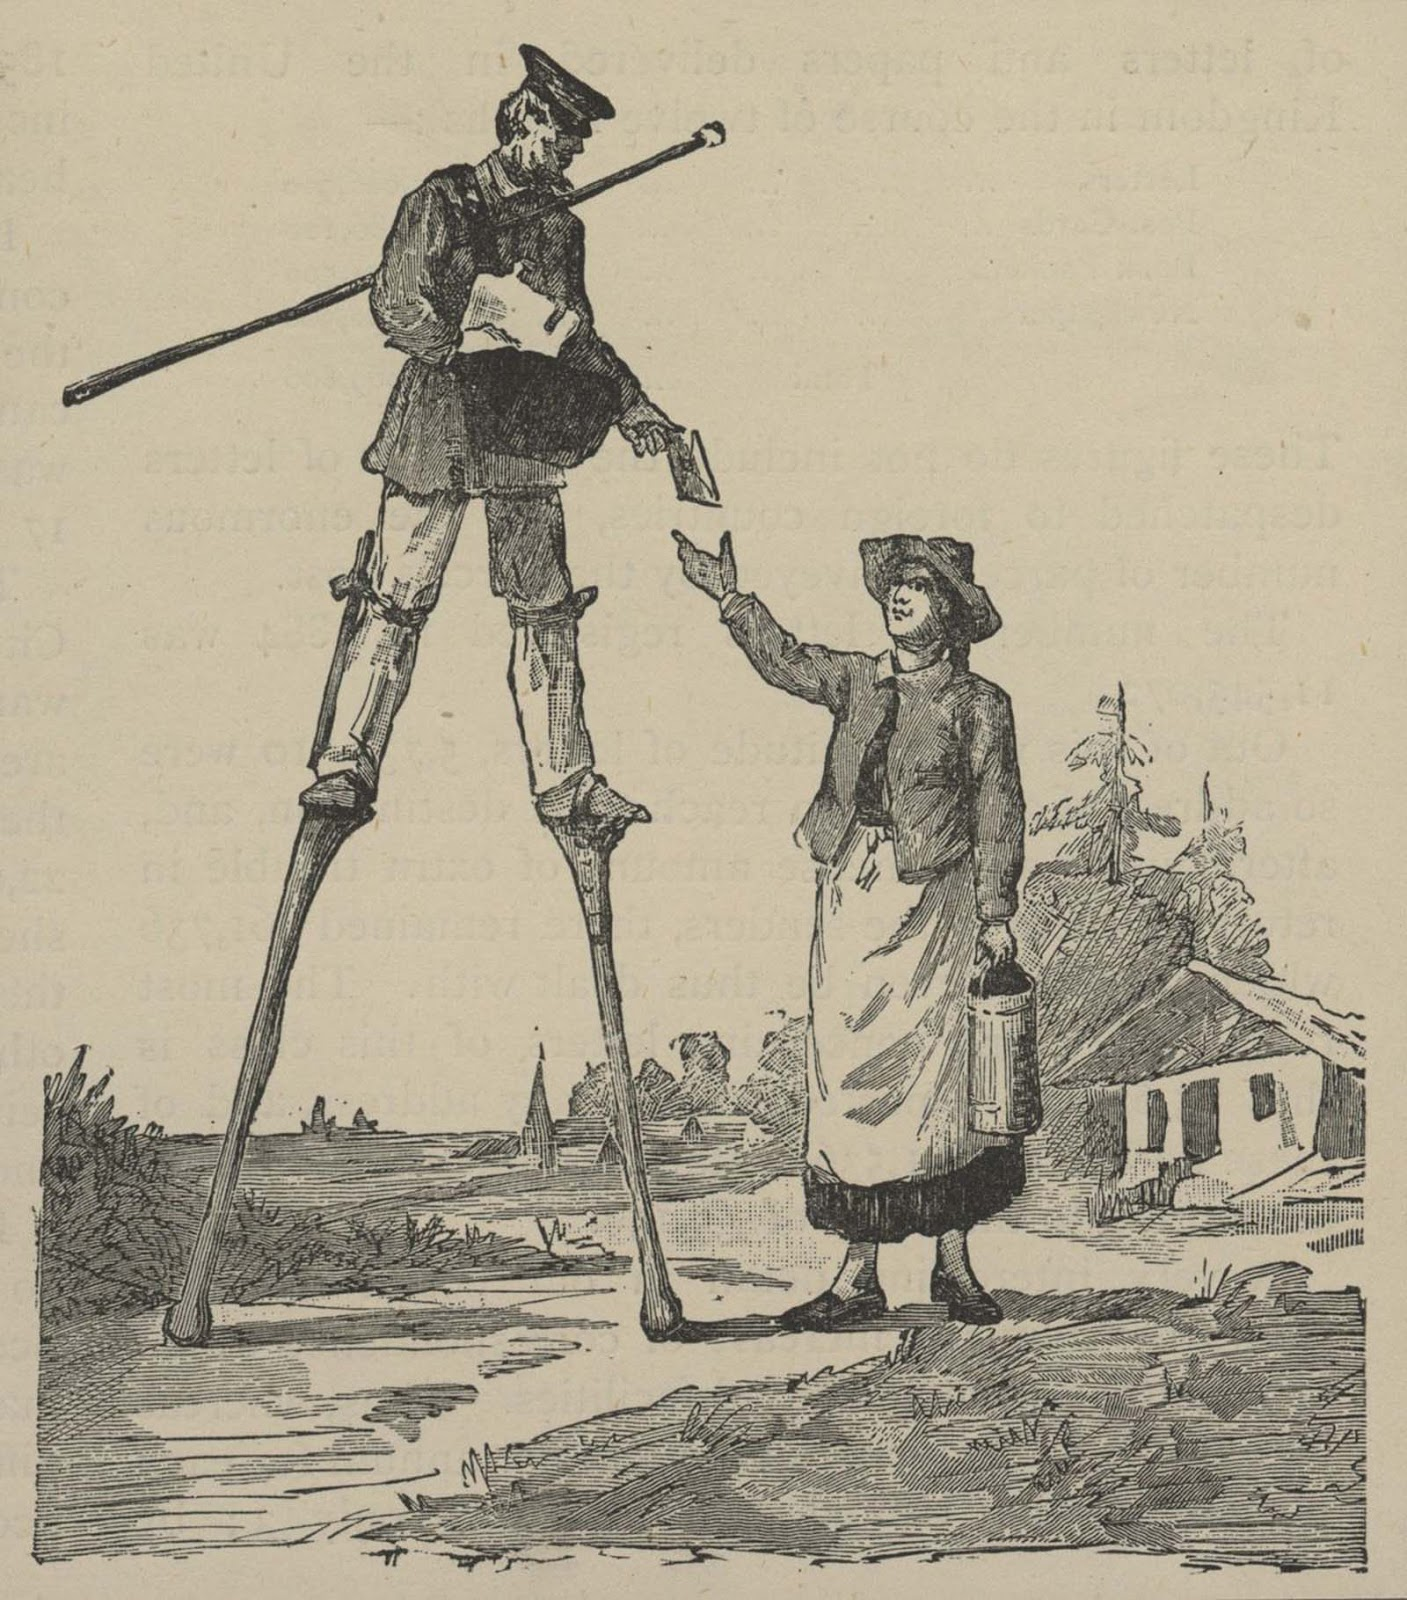 An illustration of a mid-19th century Landes postman. 1850.